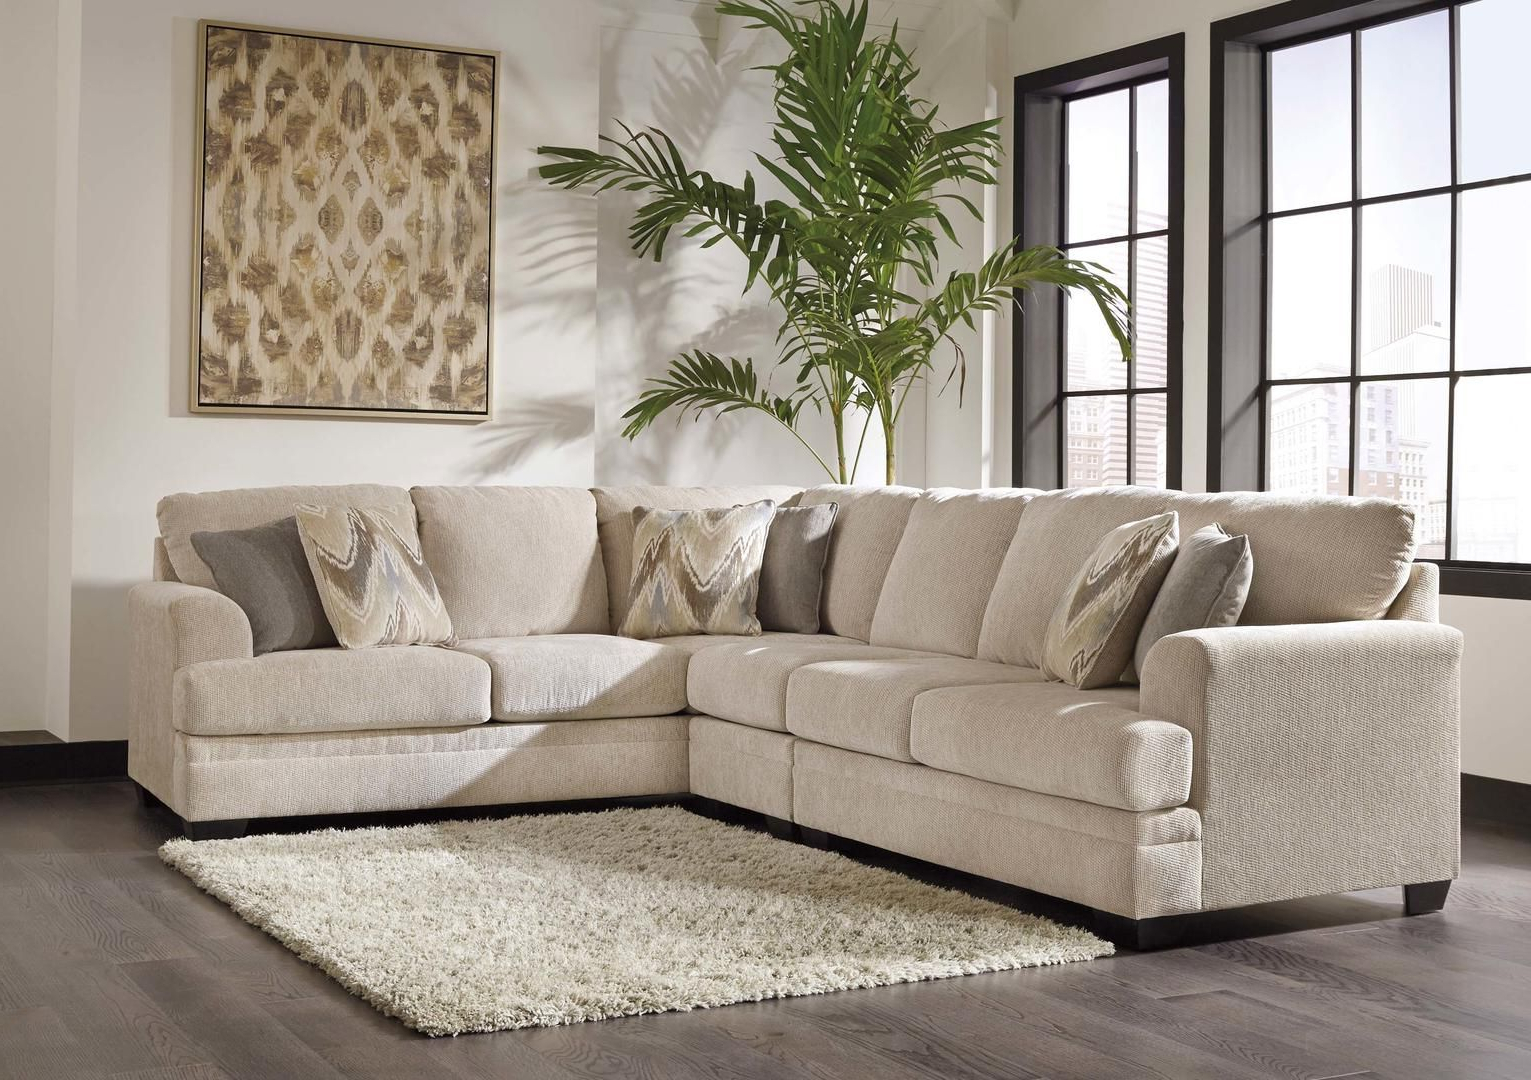 Ameer 81806 55 46 67 3 Piece Fabric Sectional Sofa With Left Arm Pertaining To 2018 Malbry Point 3 Piece Sectionals With Raf Chaise (Gallery 12 of 20)